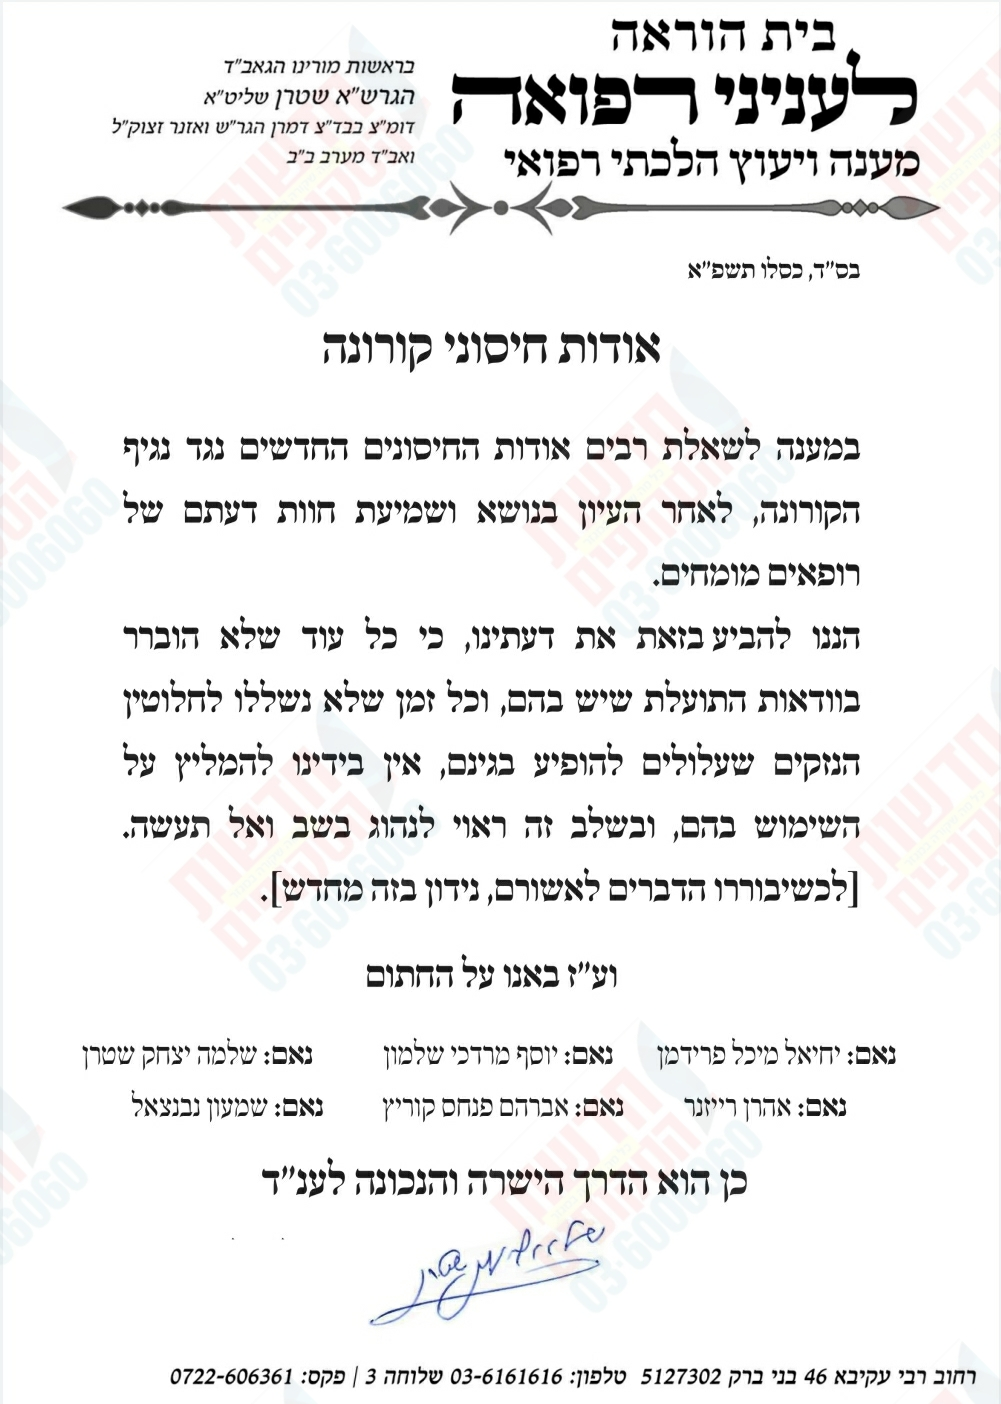 Letter from rabbis of rabbinical organization on medical issues ruling against the covid vaccine